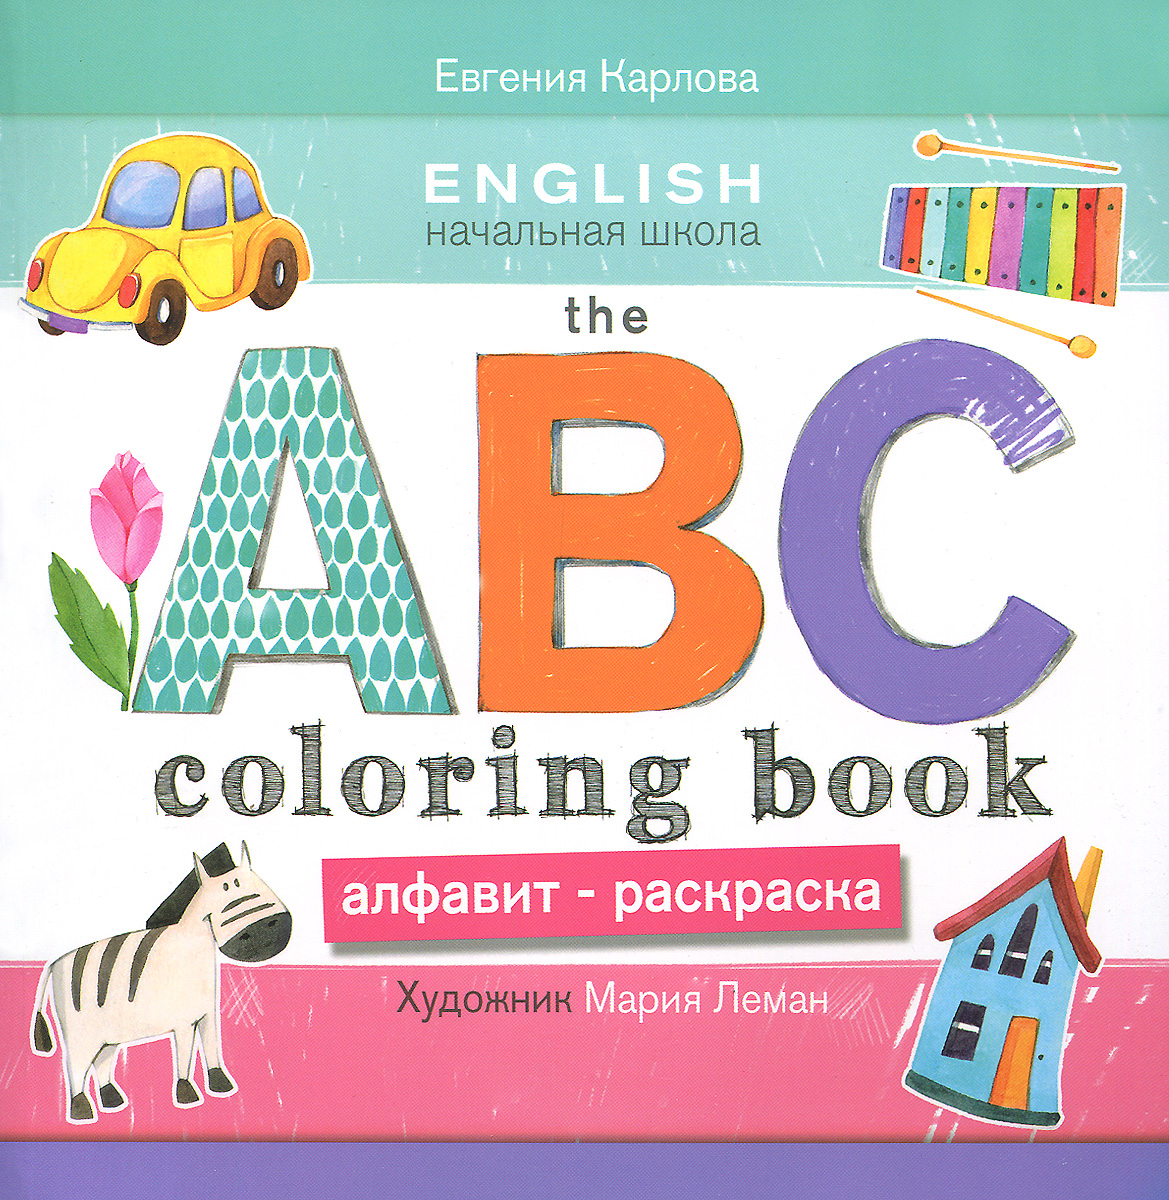 Е. Л. Карлова The ABC Coloring Book / Алфавит-раскраска coloring of trees